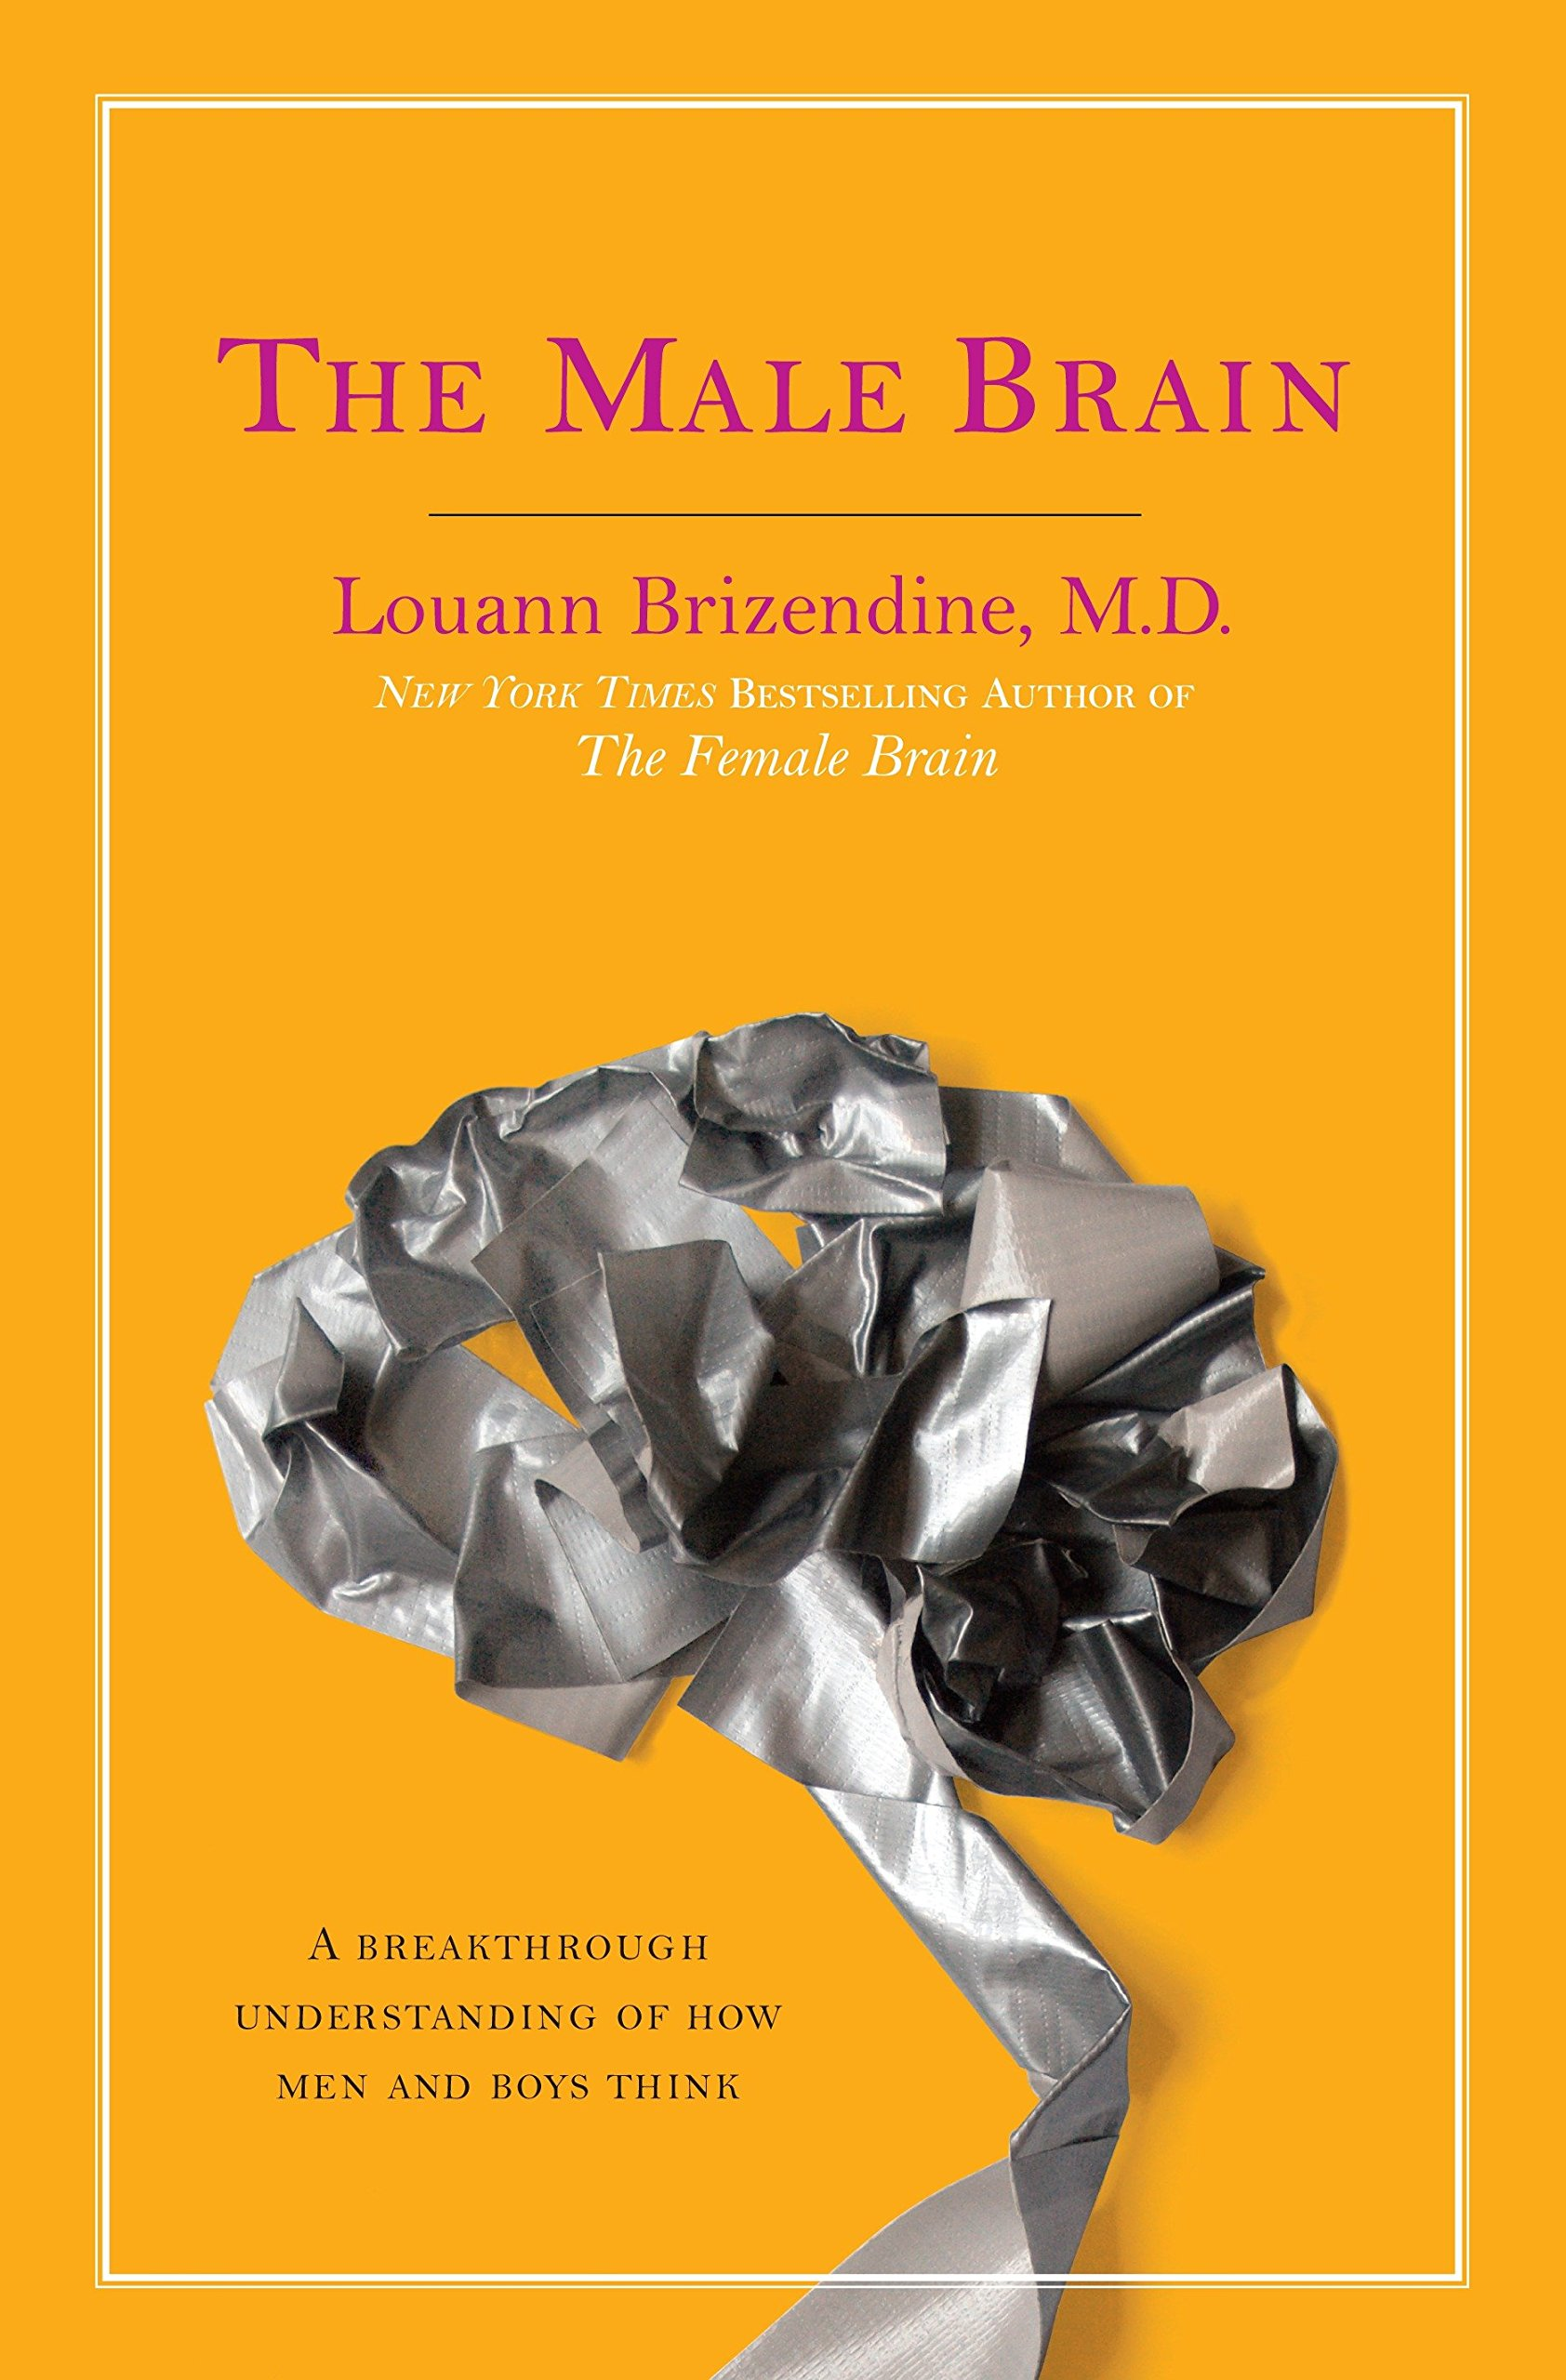 The Male Brain: A Breakthrough Understanding of How Men and Boys Think PDF